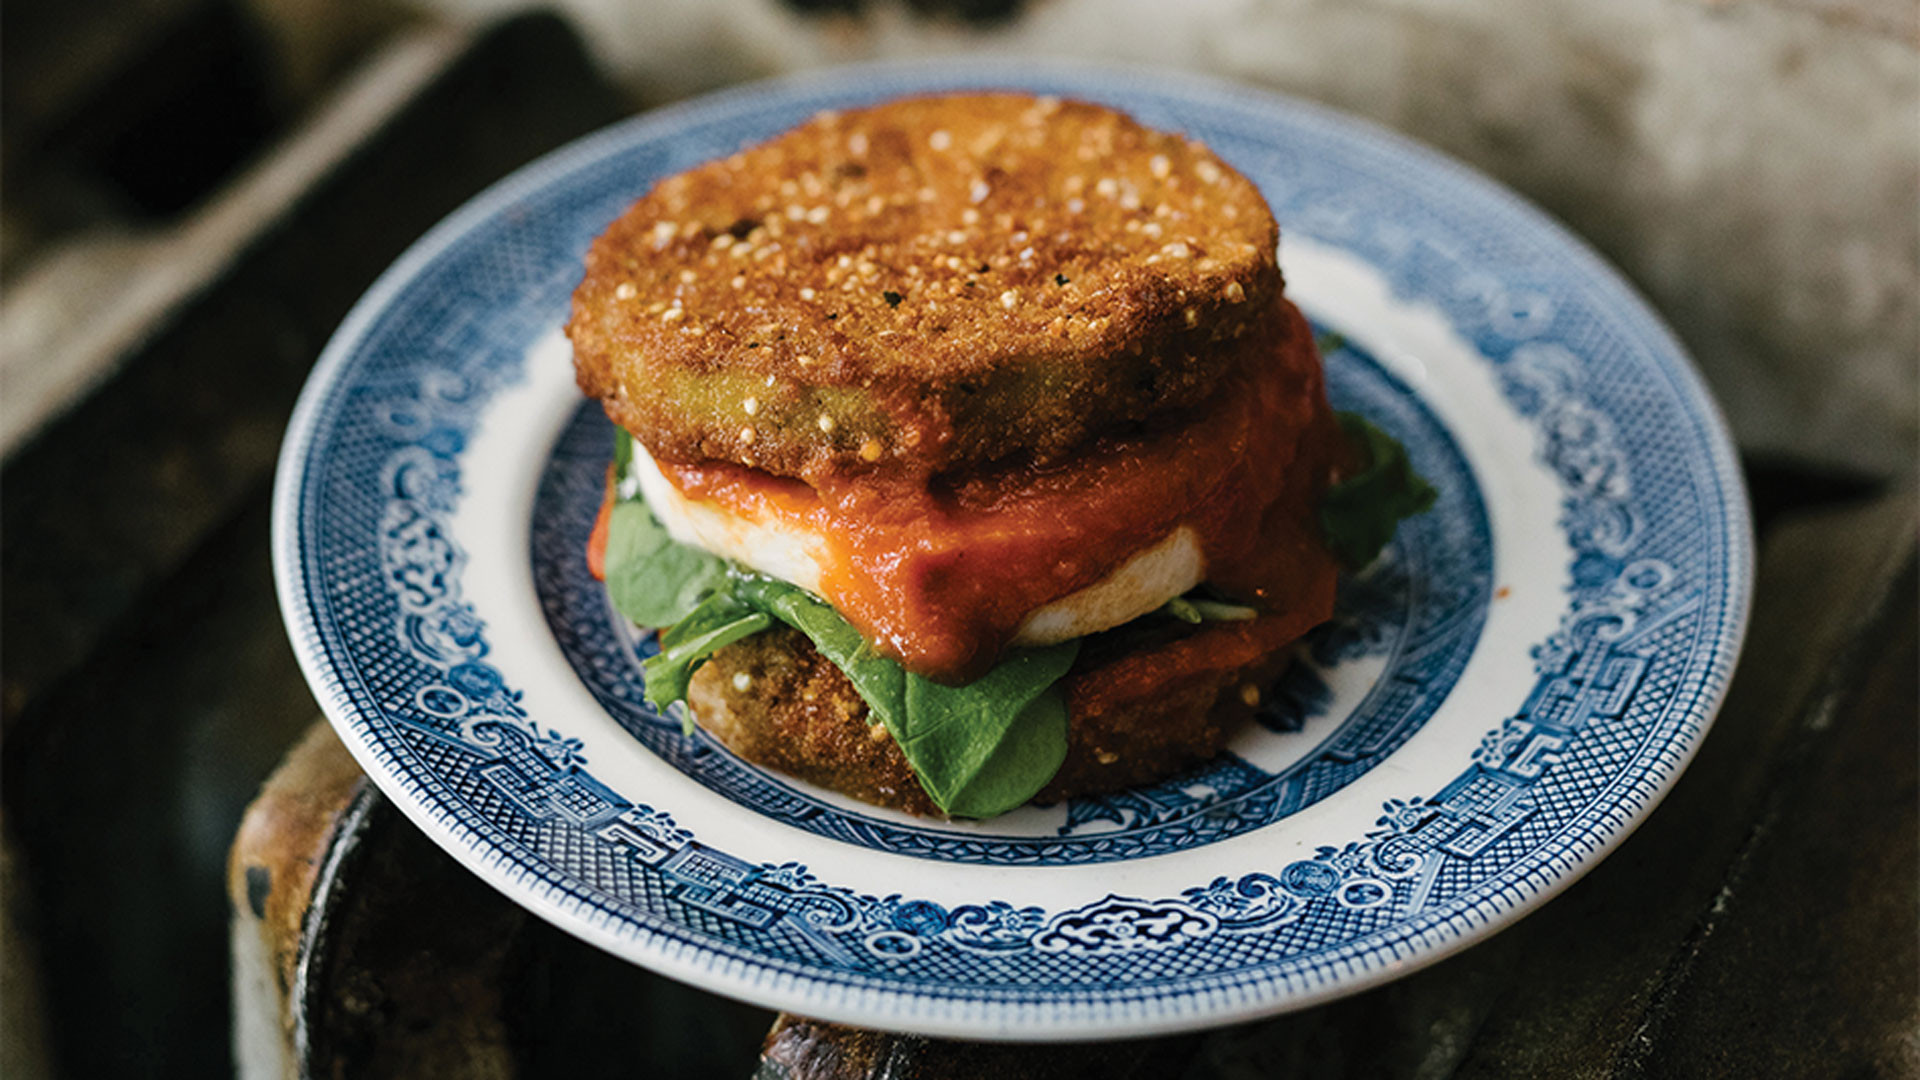 Iconic Dishes: 416 Snack Bar | Eggplant Doubledown